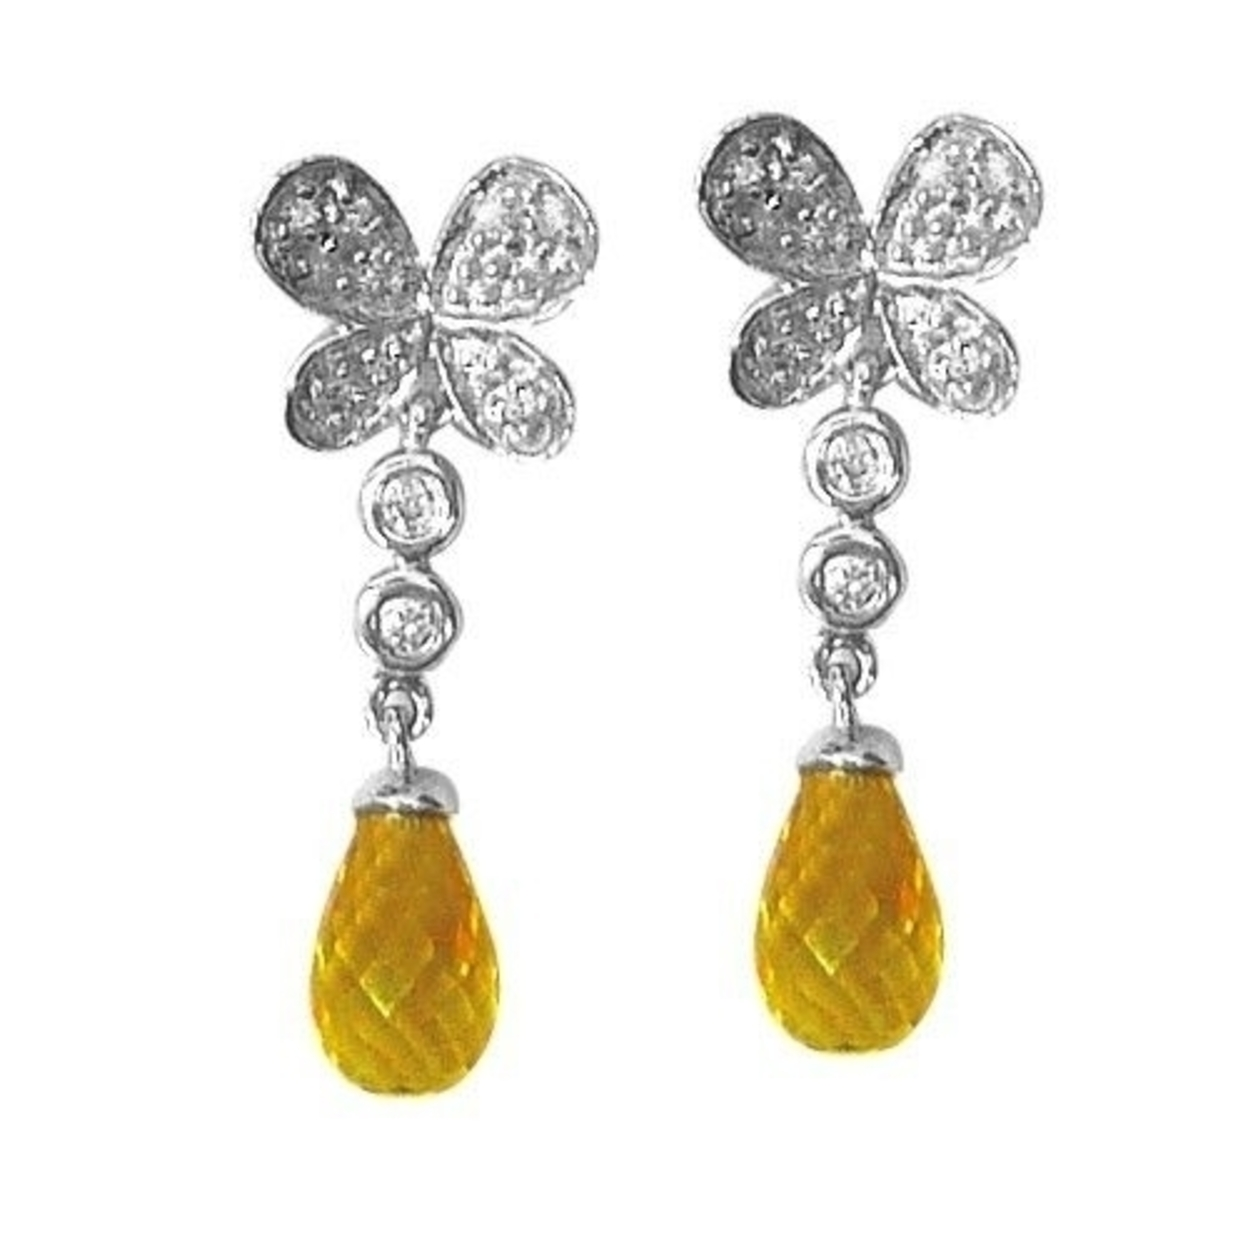 14k White Gold Butterfly Drop Earrings With Diamonds And A Citrine Stone